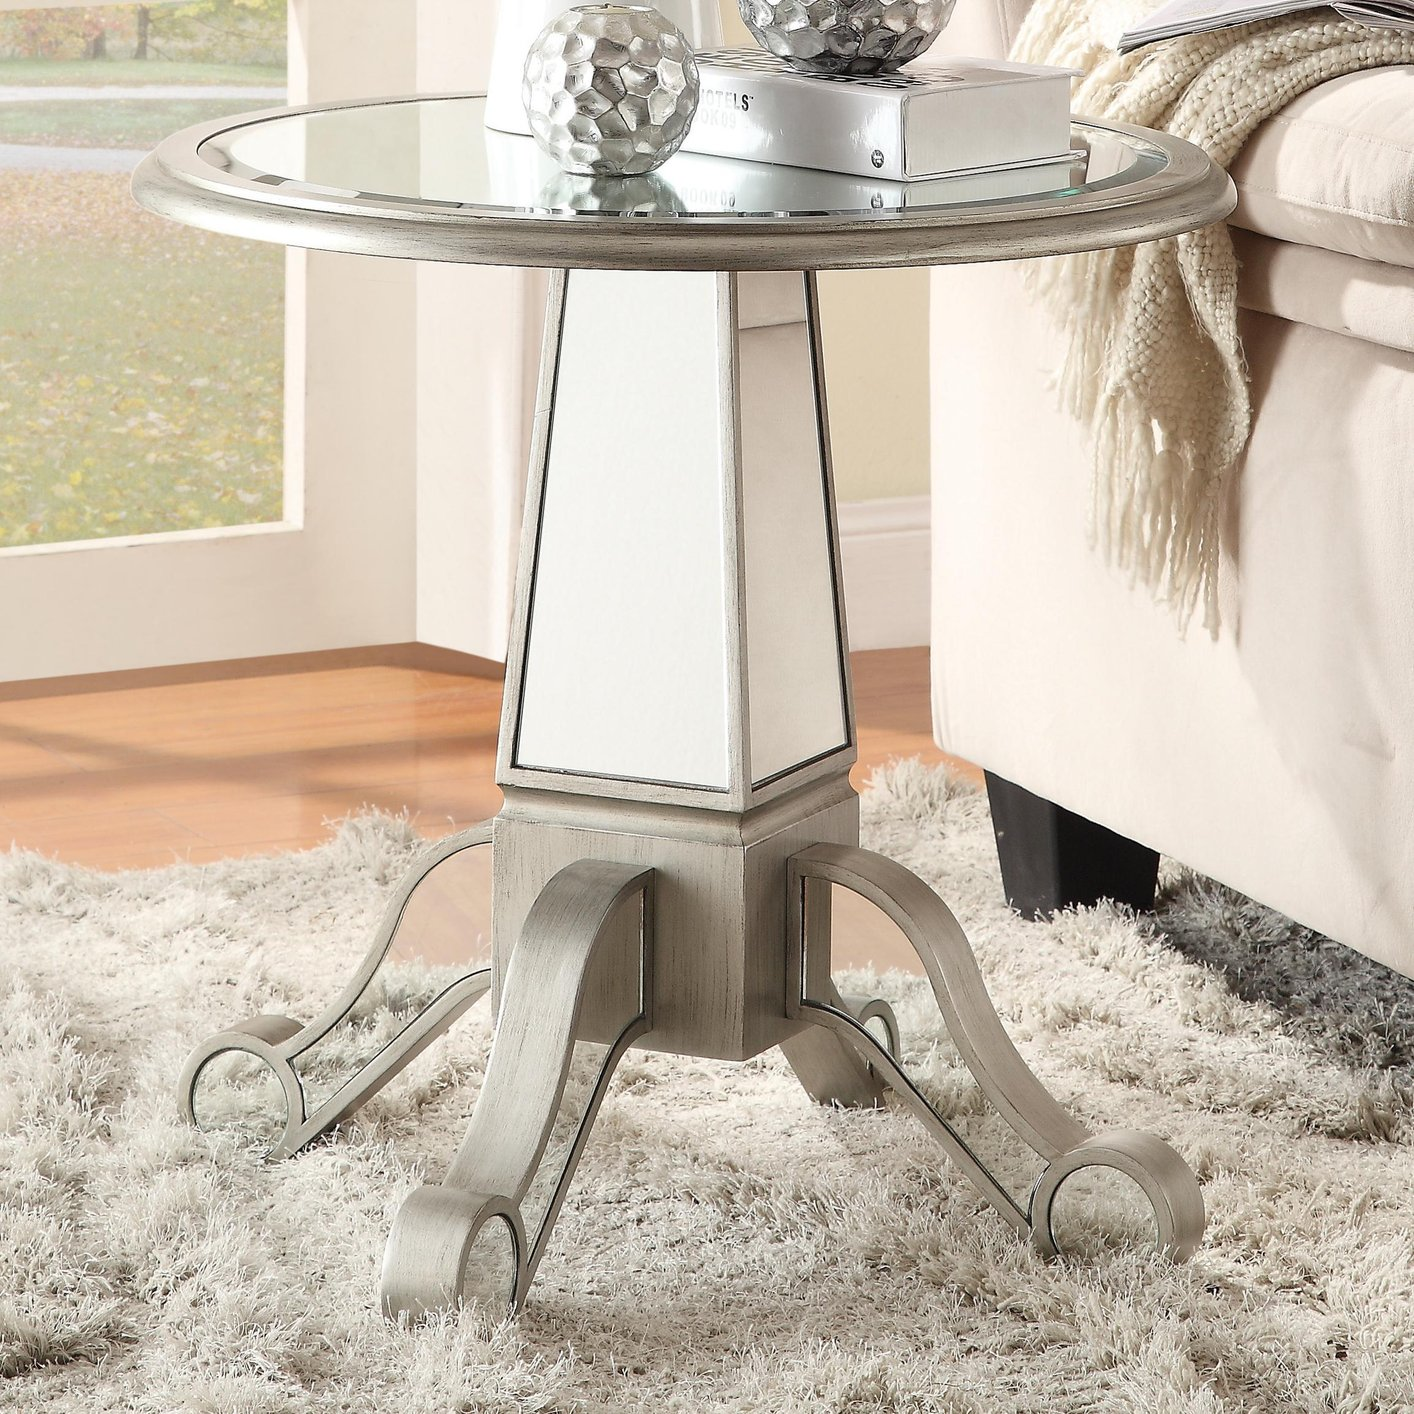 silver metal accent table steal sofa furniture los angeles glass and mirror hobby lobby coffee farmhouse decor round pedestal bedside carpet tile transition strips small garden